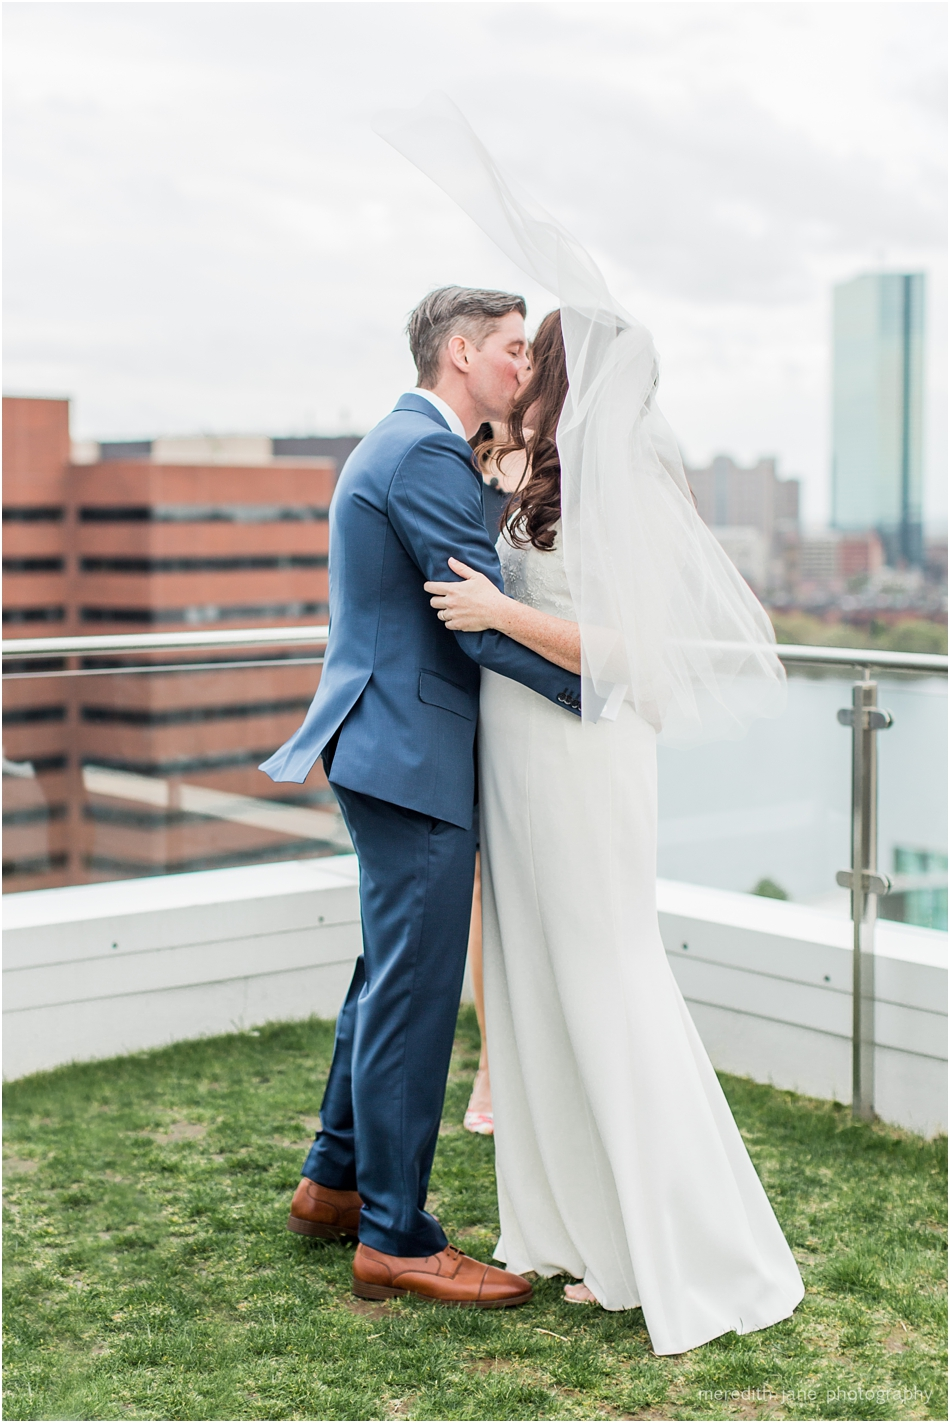 commonwealth_market_restaurant_roofdeck_ceremony_cambridge_boston_massachusetts_cape_cod_new_england_wedding_photographer_Meredith_Jane_Photography_photo_1357.jpg